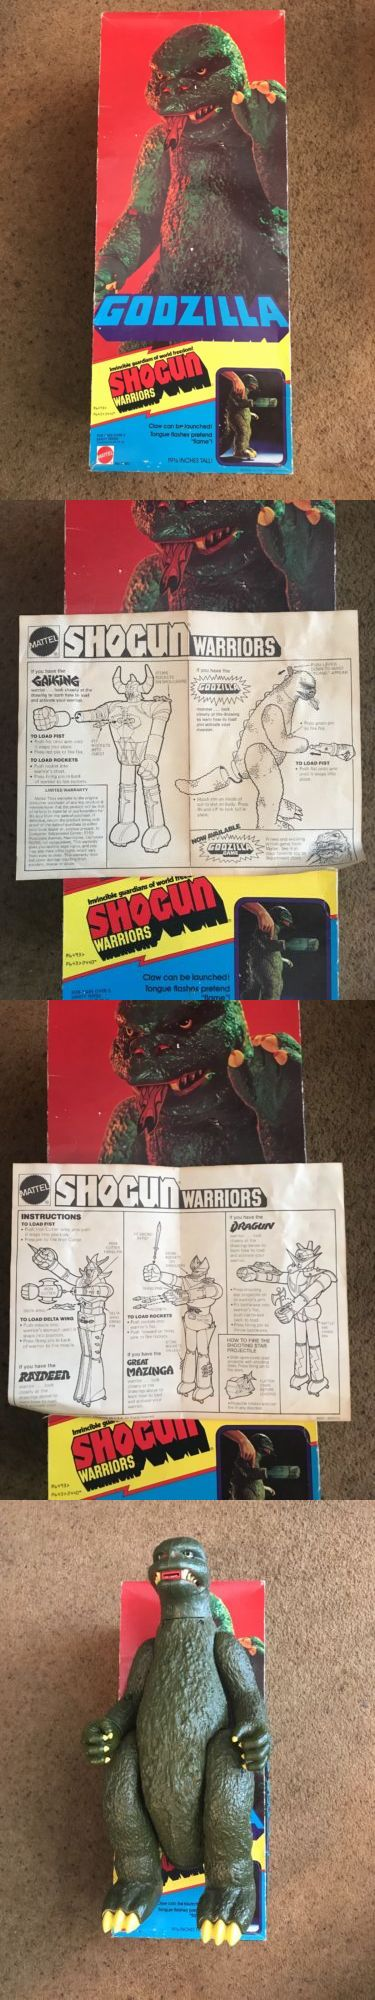 Godzilla 747: Vintage Godzilla Toy 1977 Mattel 19 1 2 No. 2440 -> BUY IT NOW ONLY: $850 on eBay!